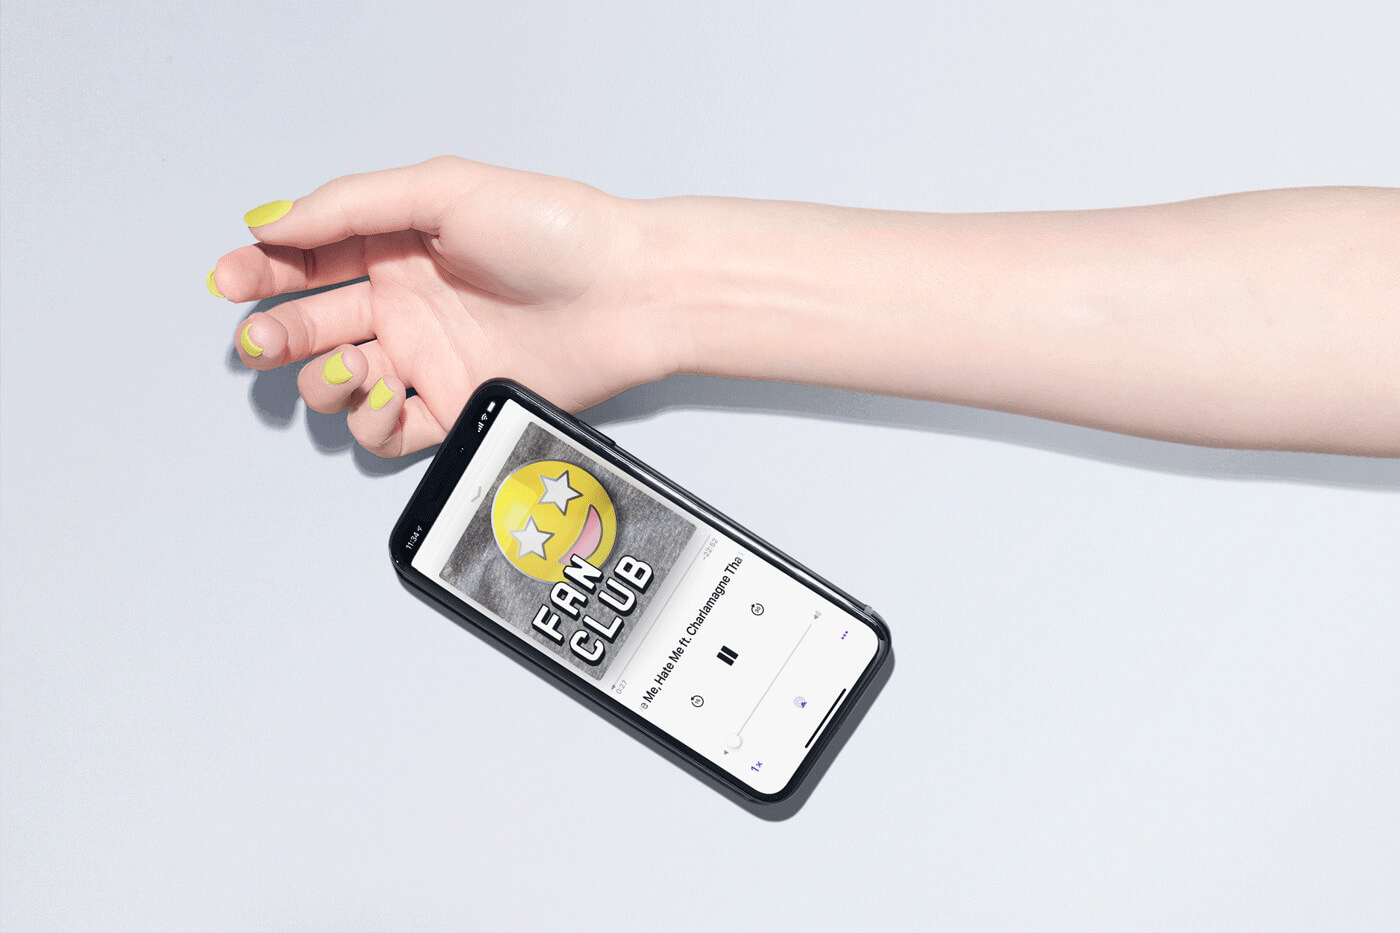 Woman's hand with bright yellow painted nails dropping a smartphone from her hand, displaying the Fan Club podcast identity.